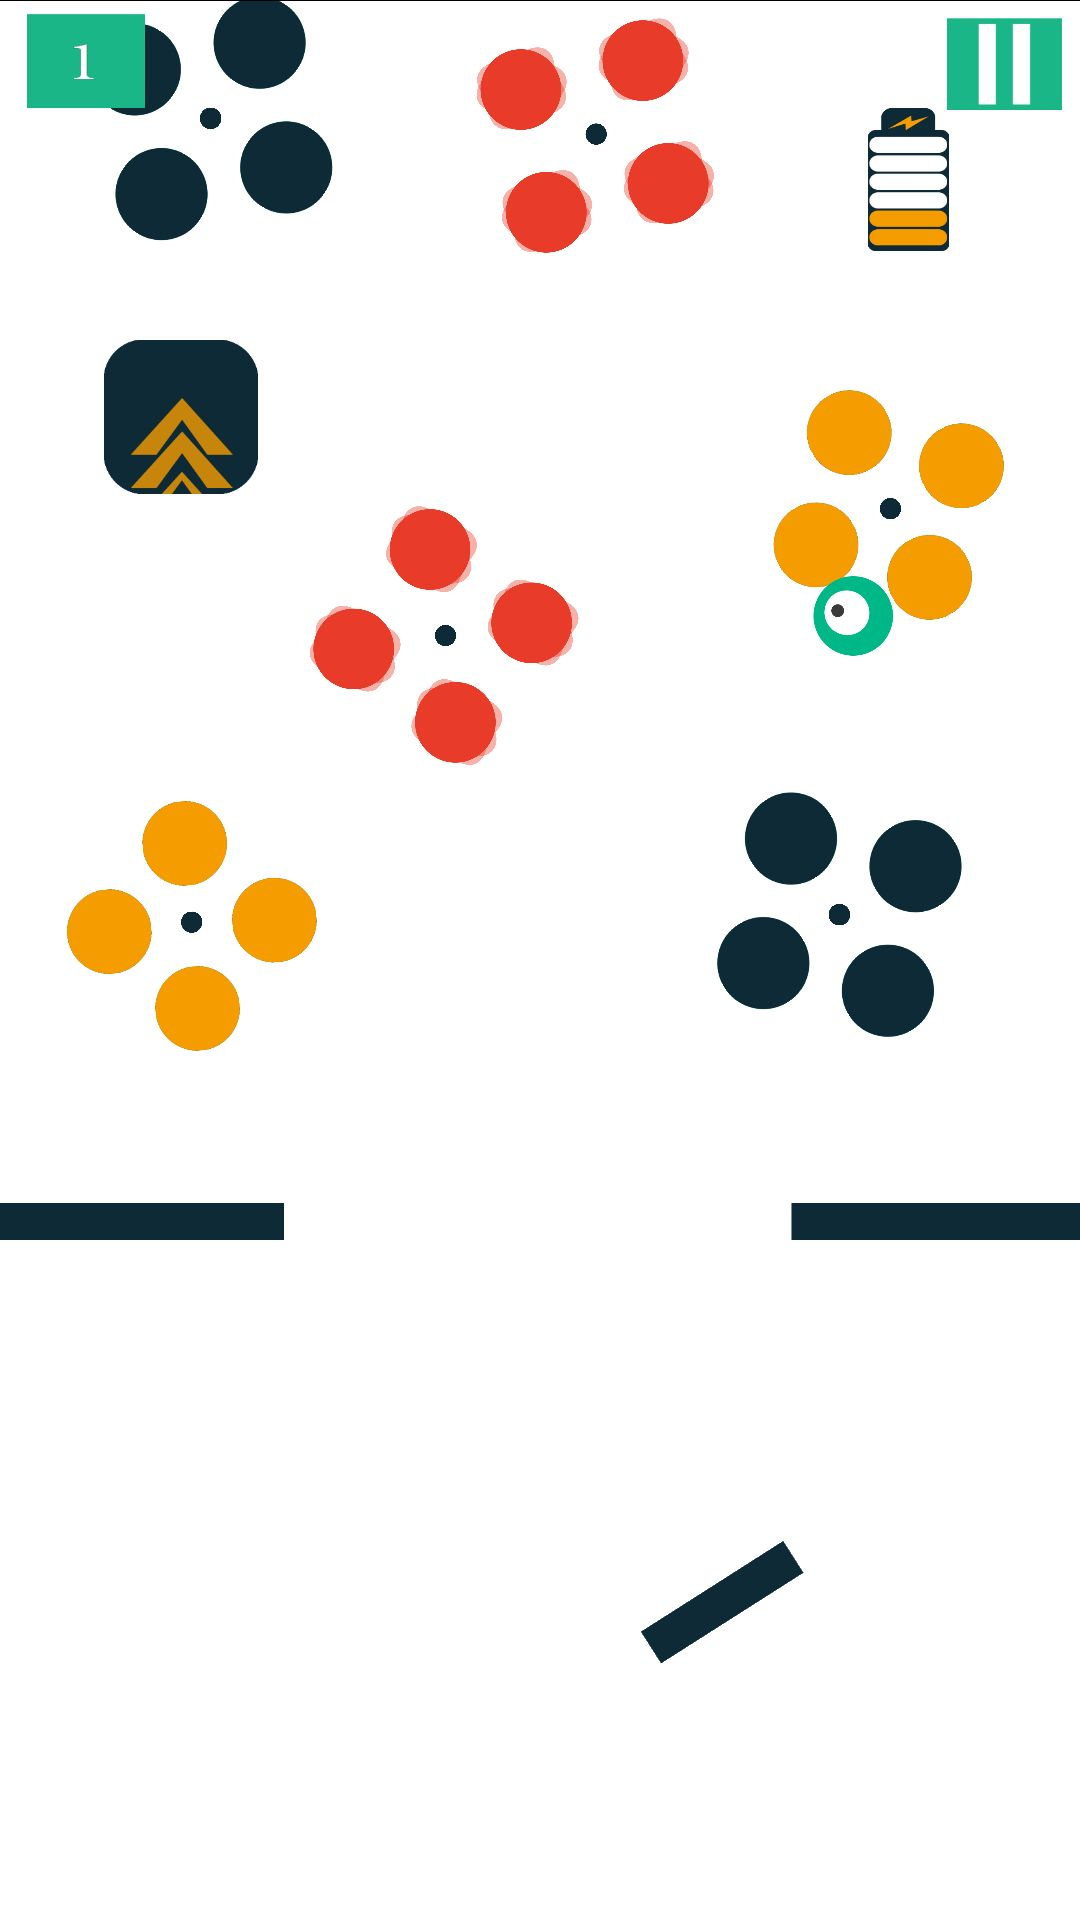 BounceBall - Android Game Template Screenshot 6